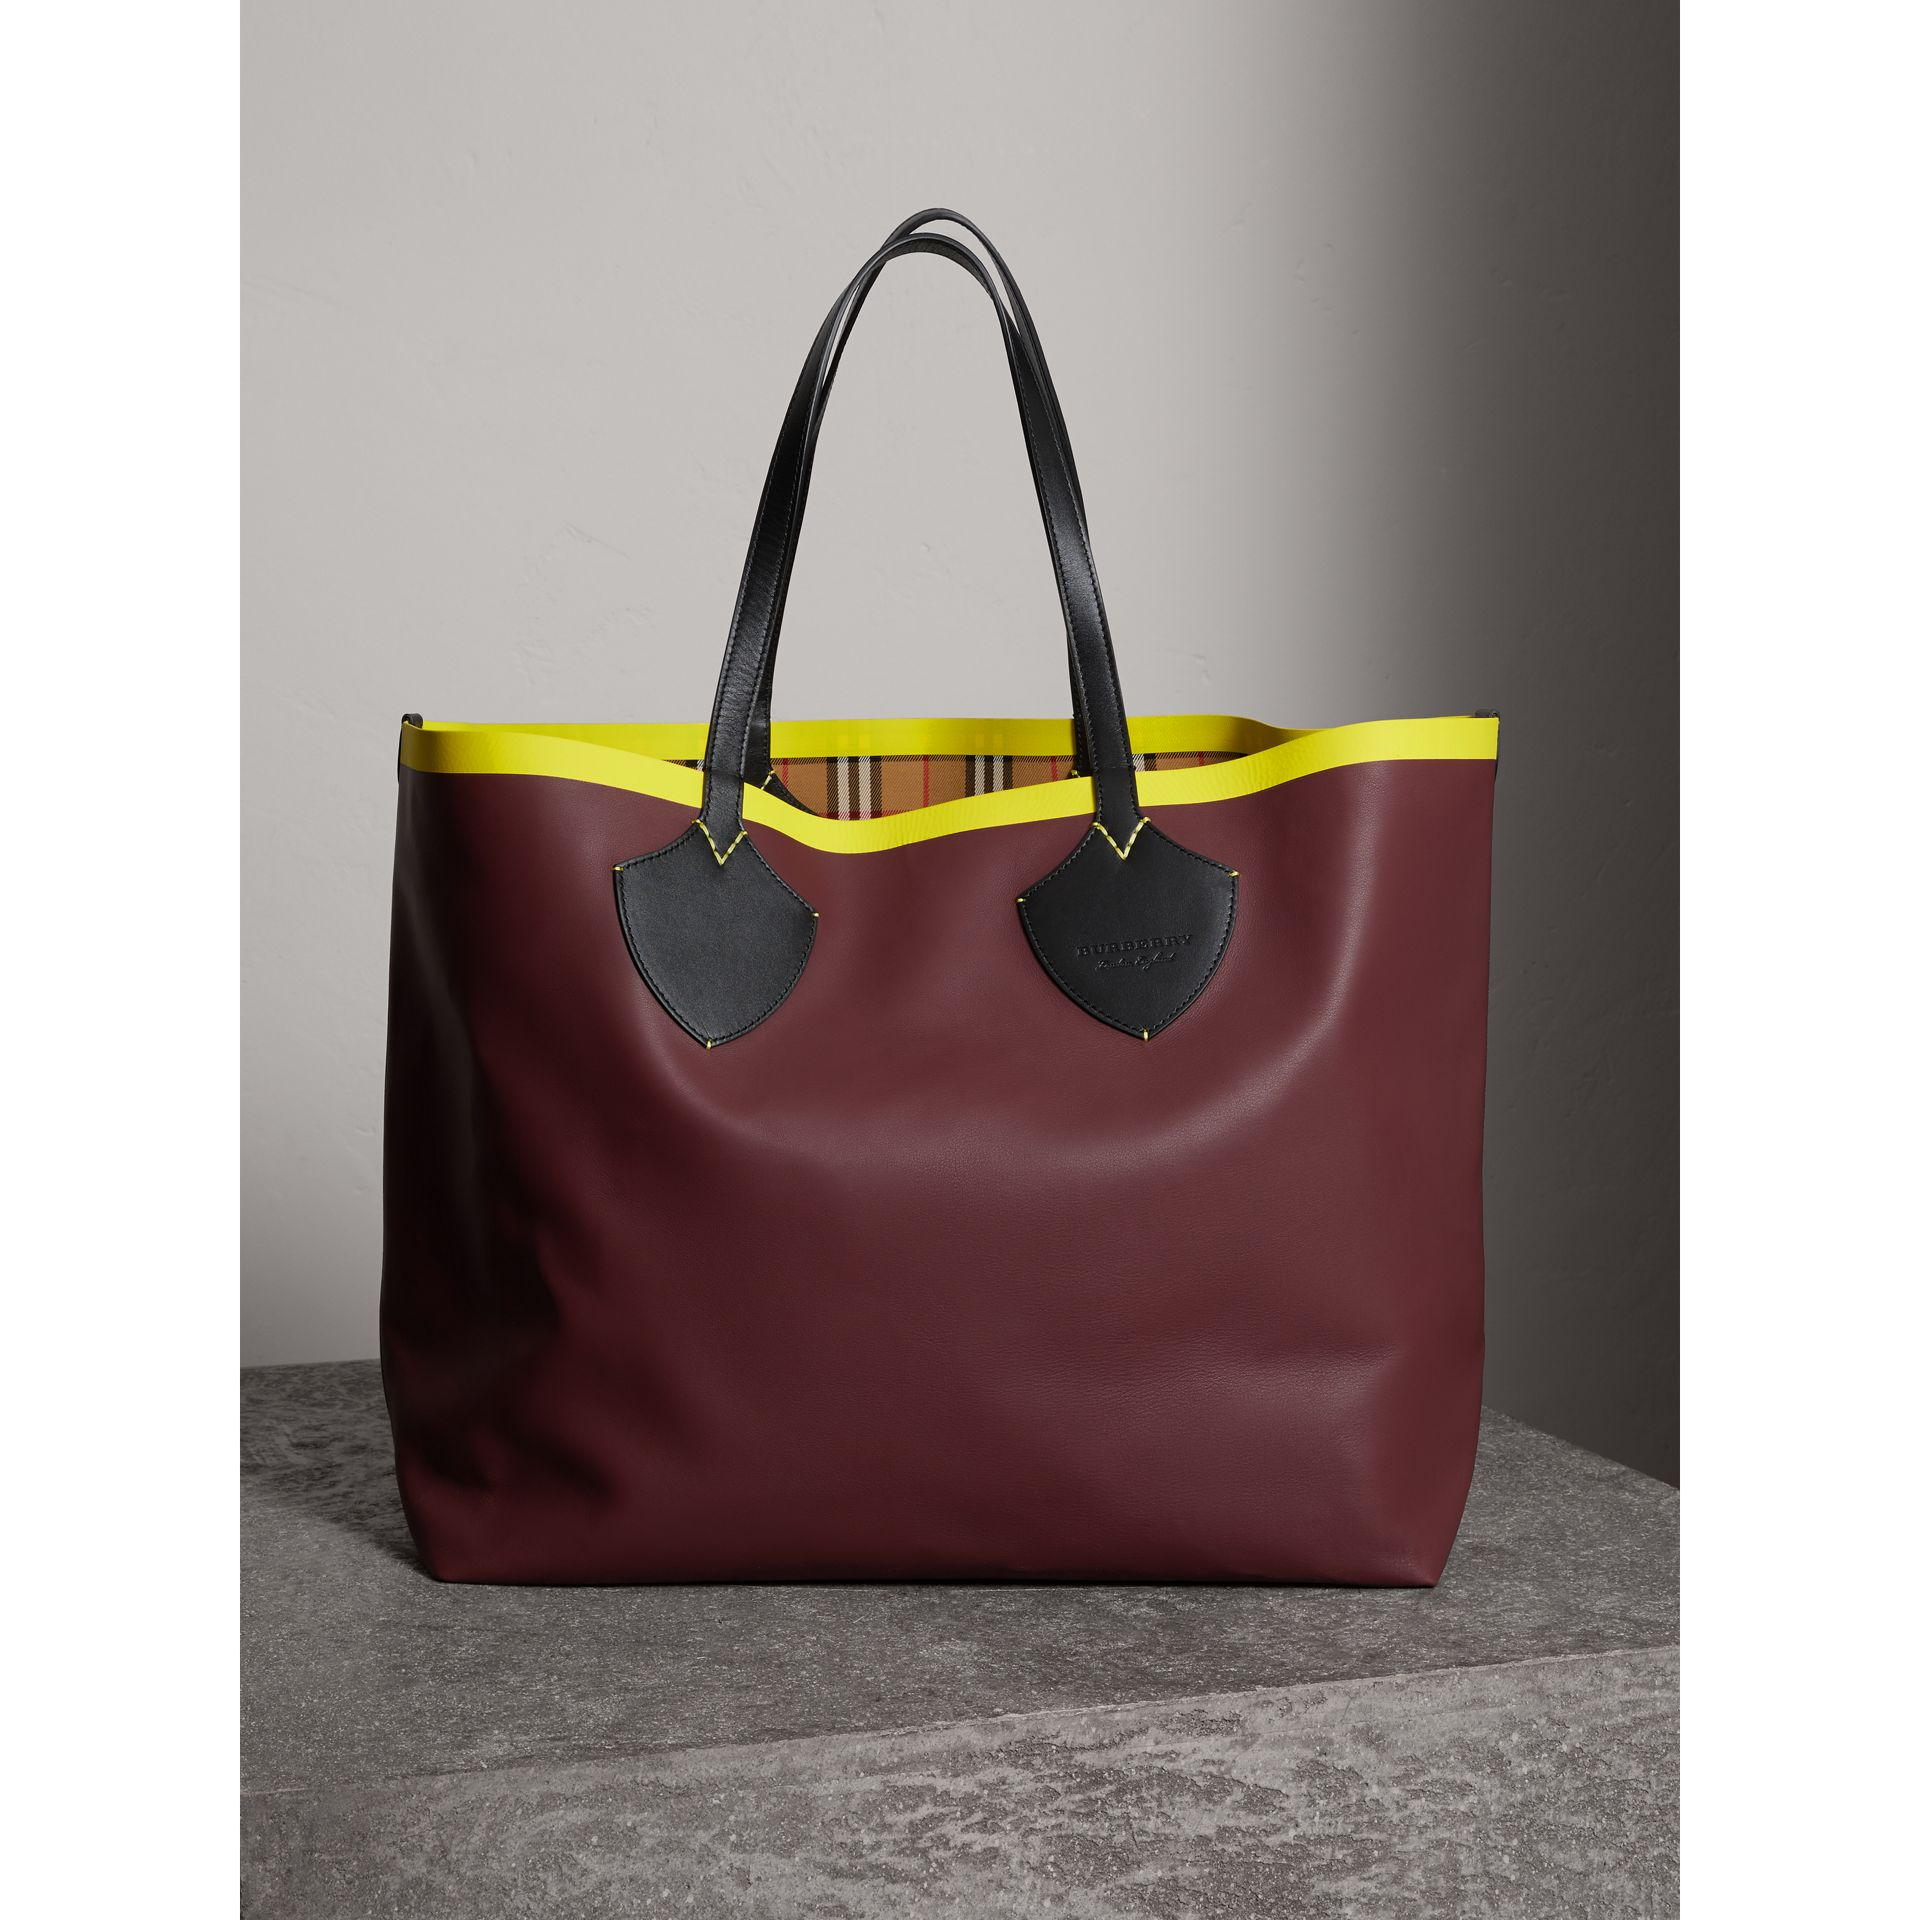 Sac tote The Giant réversible en coton à motif Vintage check et cuir (Rouge Acajou/jaune Antique) | Burberry Canada - photo de la galerie 7